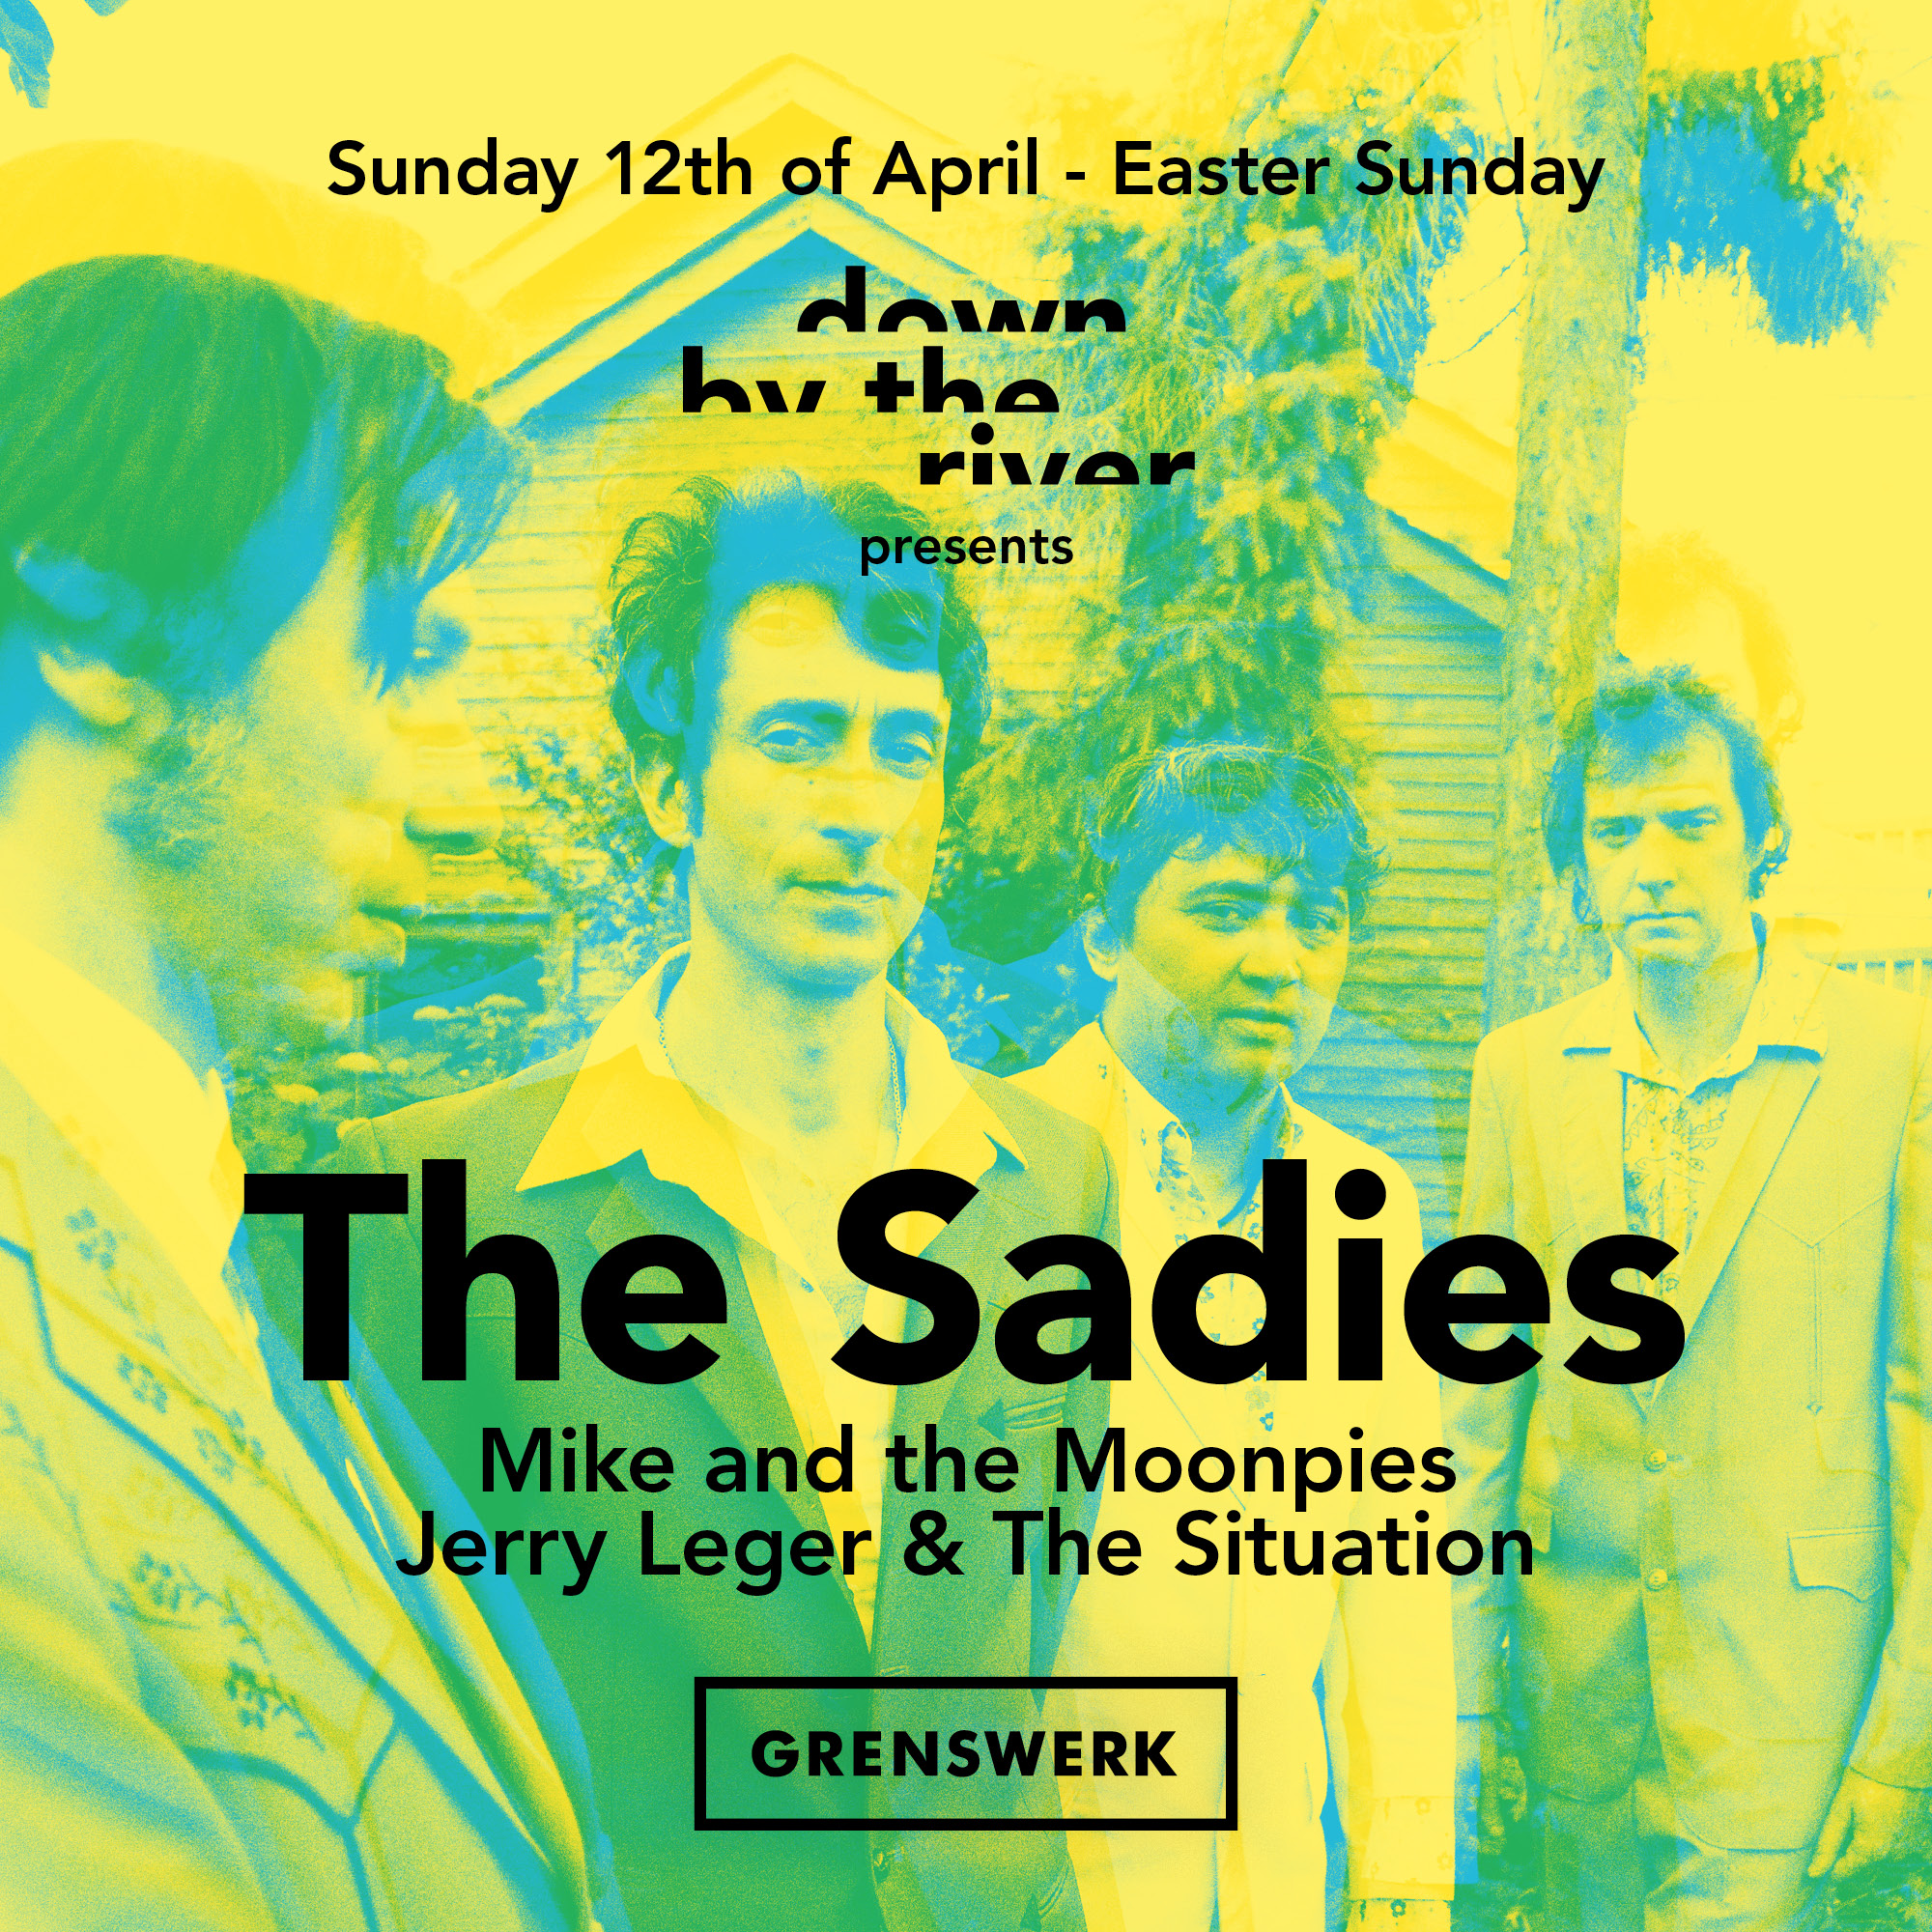 Down By The River presents: The Sadies, Mike & The Moonpies, Jerry Leger & The Situation